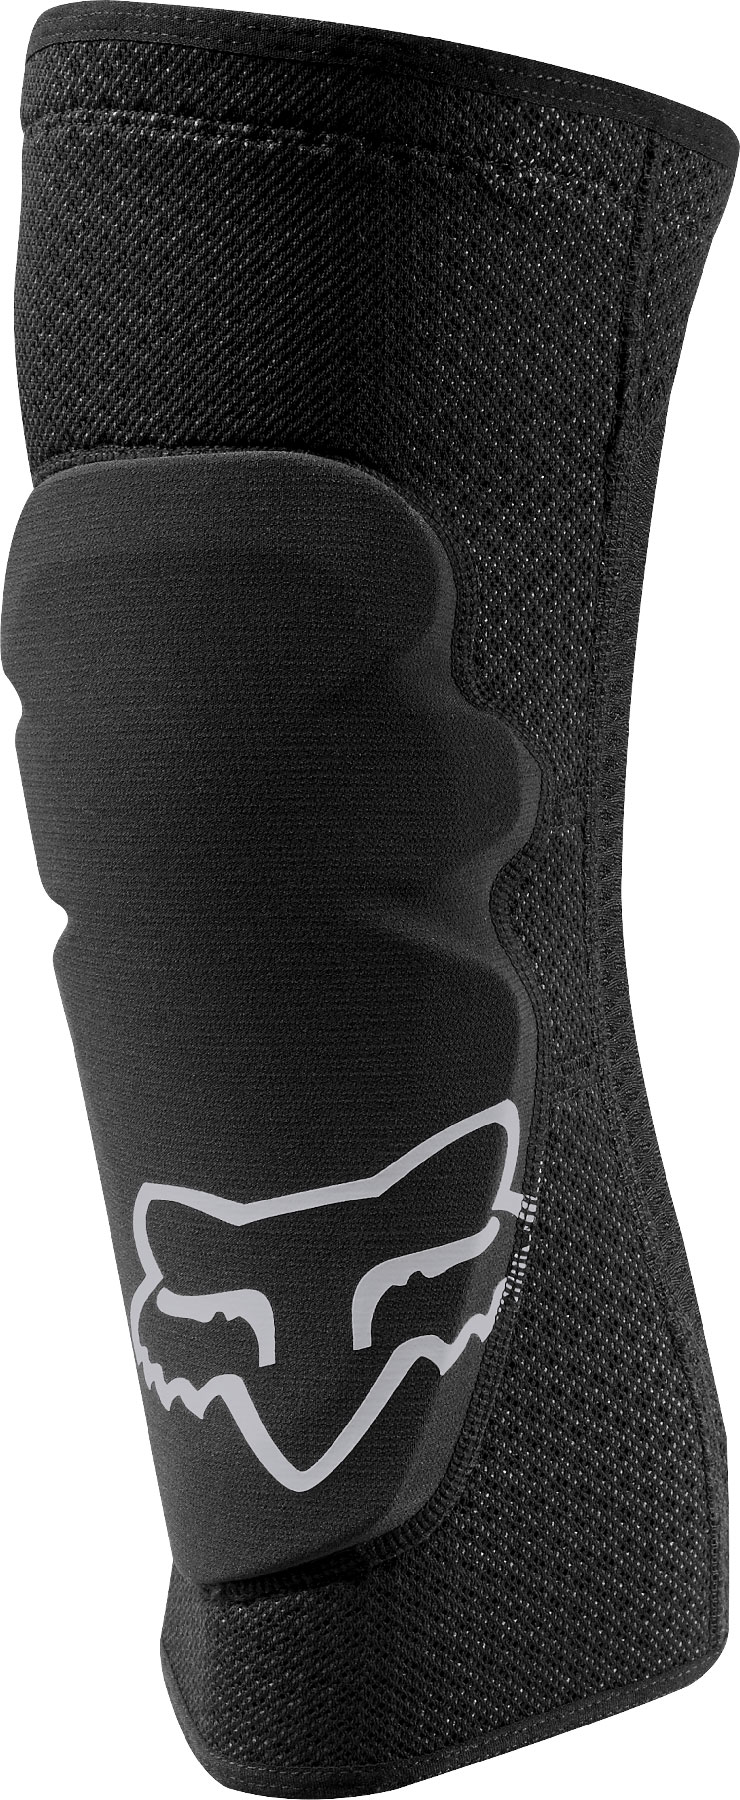 Fox Racing Enduro Knee Sleeve | Amour